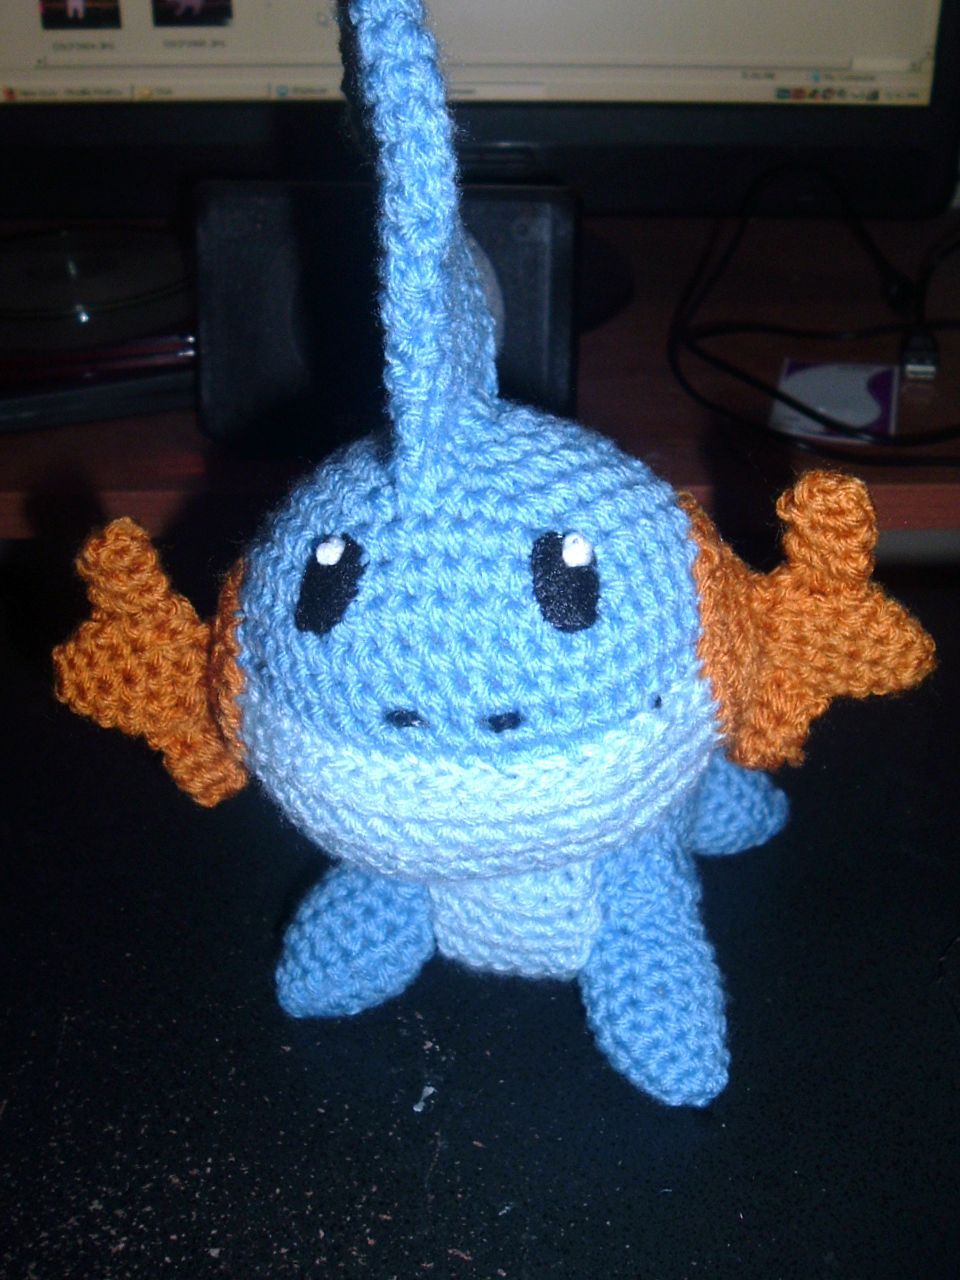 Crochet Patterns Pokemon : 2000 Free Amigurumi Patterns: Mudkip Free Pokemon Crochet Pattern